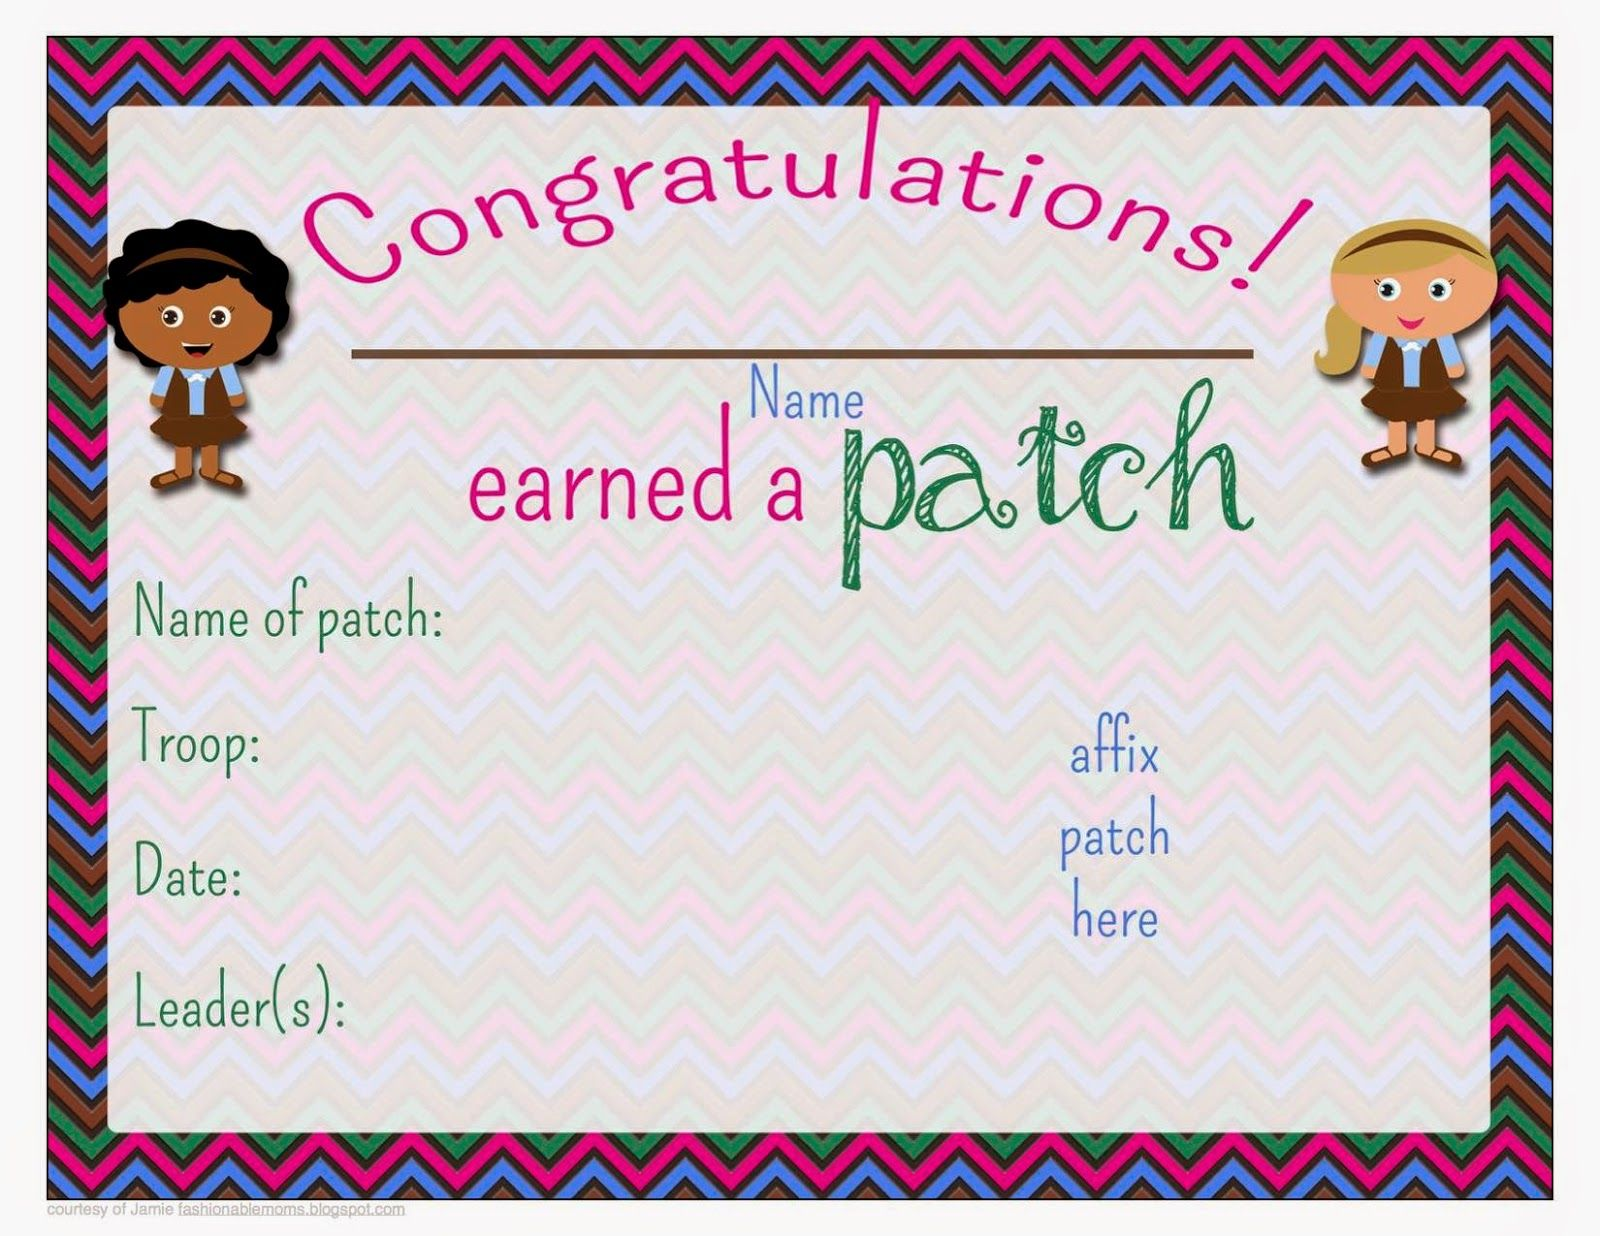 image relating to Printable Patches named No cost Printable: Patch Attained Certification Woman Scouts